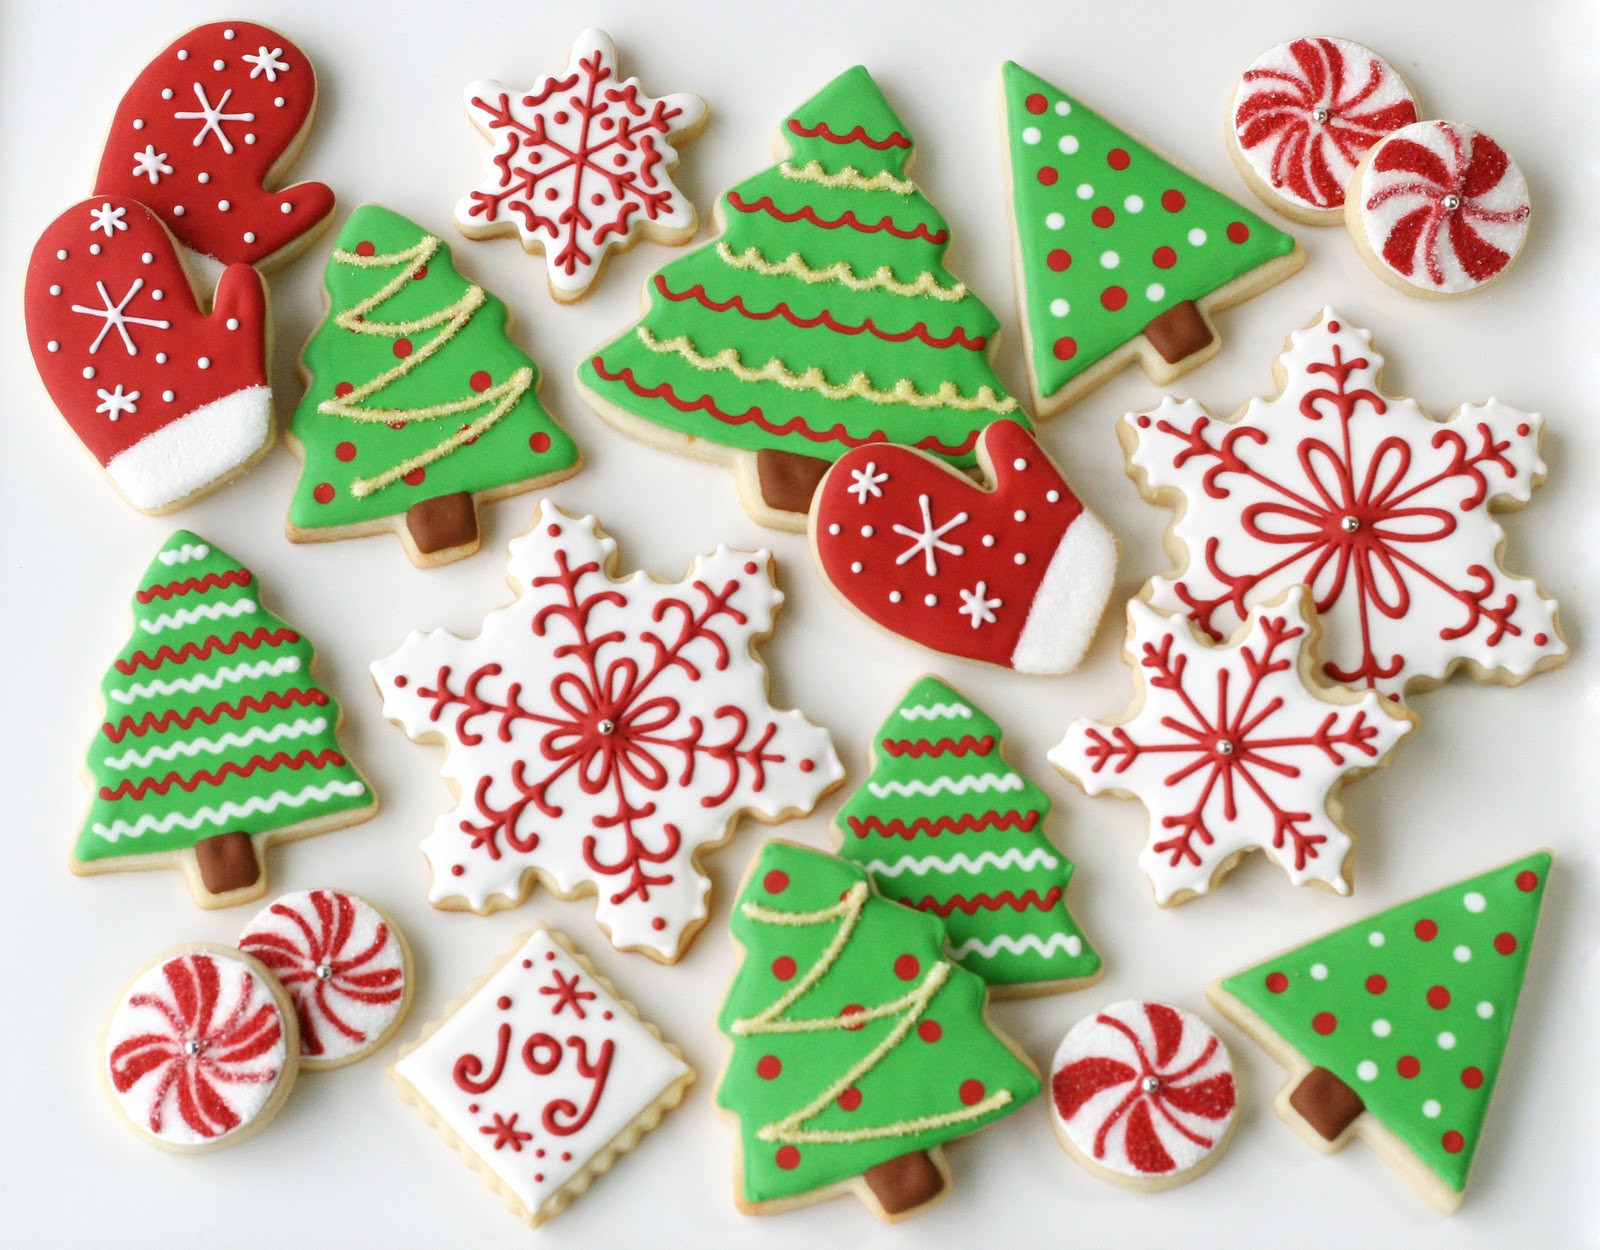 Christmas Cookies Ideas  Christmas Cookies Galore Glorious Treats